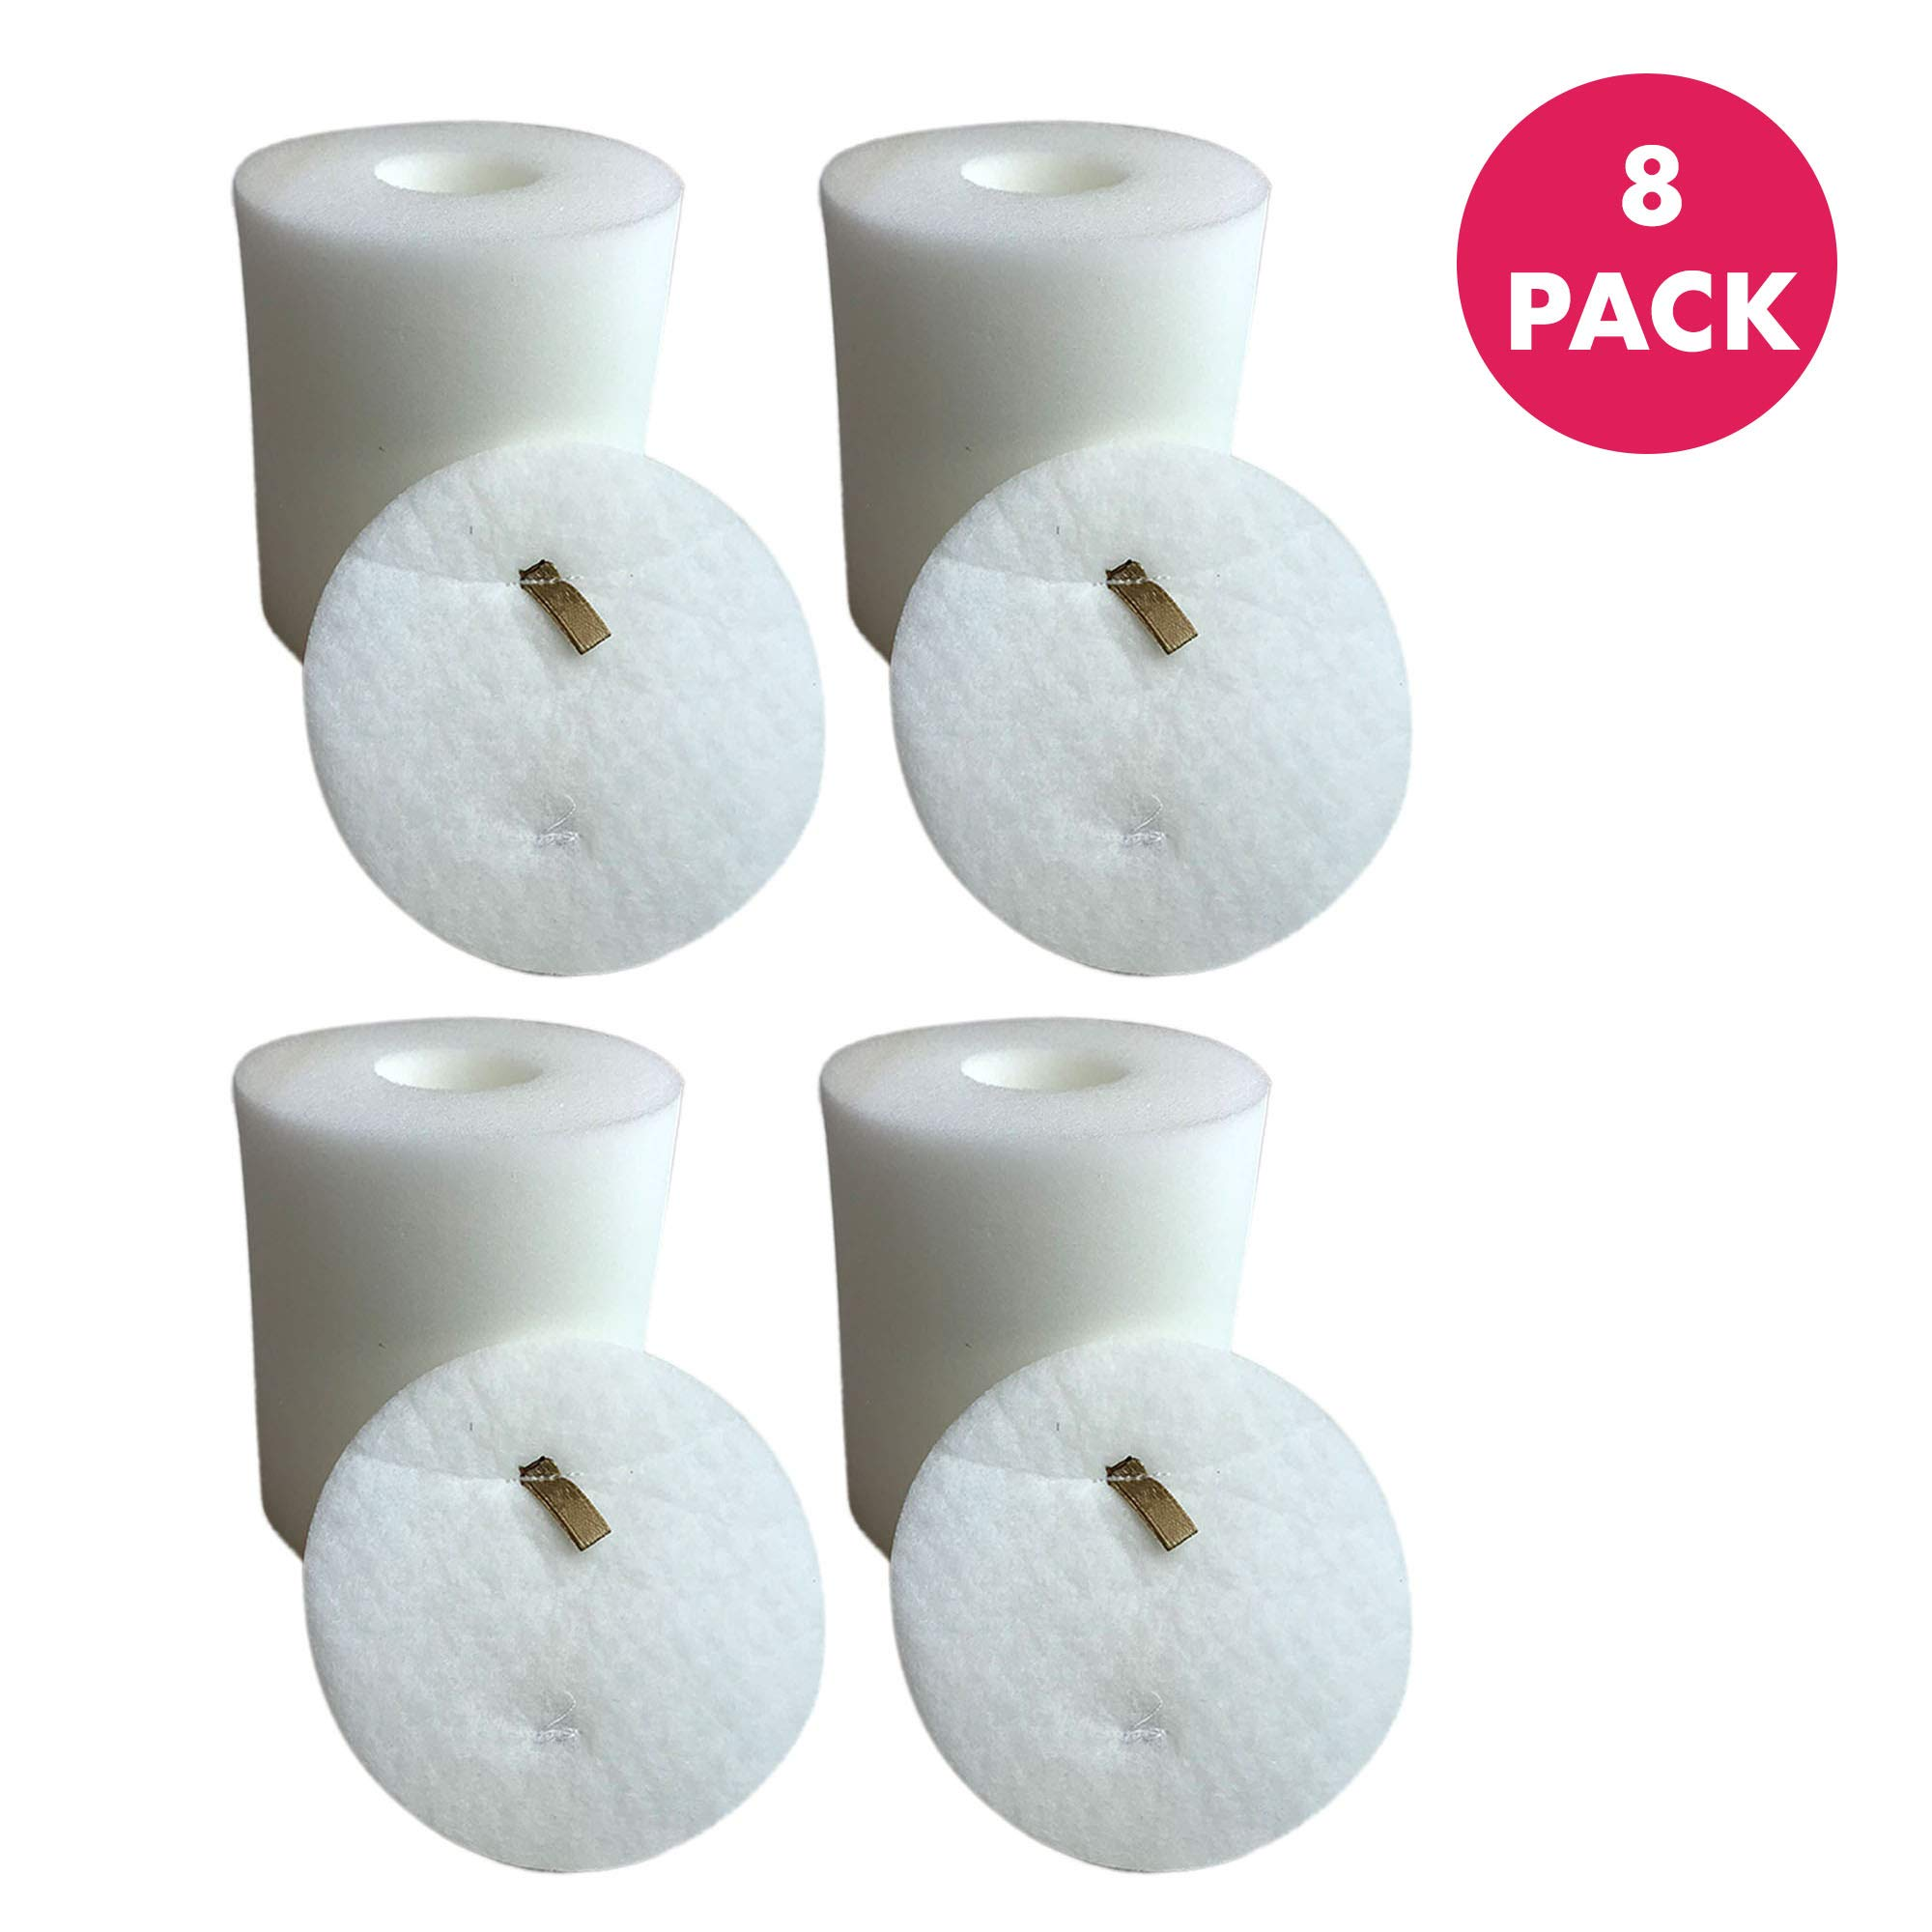 Crucial Vacuum Foam & Felt Filter Replacement Part # XFF500 - Compatible with Shark Rotator Models NV500 NV500CO NV501 NV502 NV503 NV505 NV510 NV520 NV552 NV753 UV560 NV642 - (8 Pack)